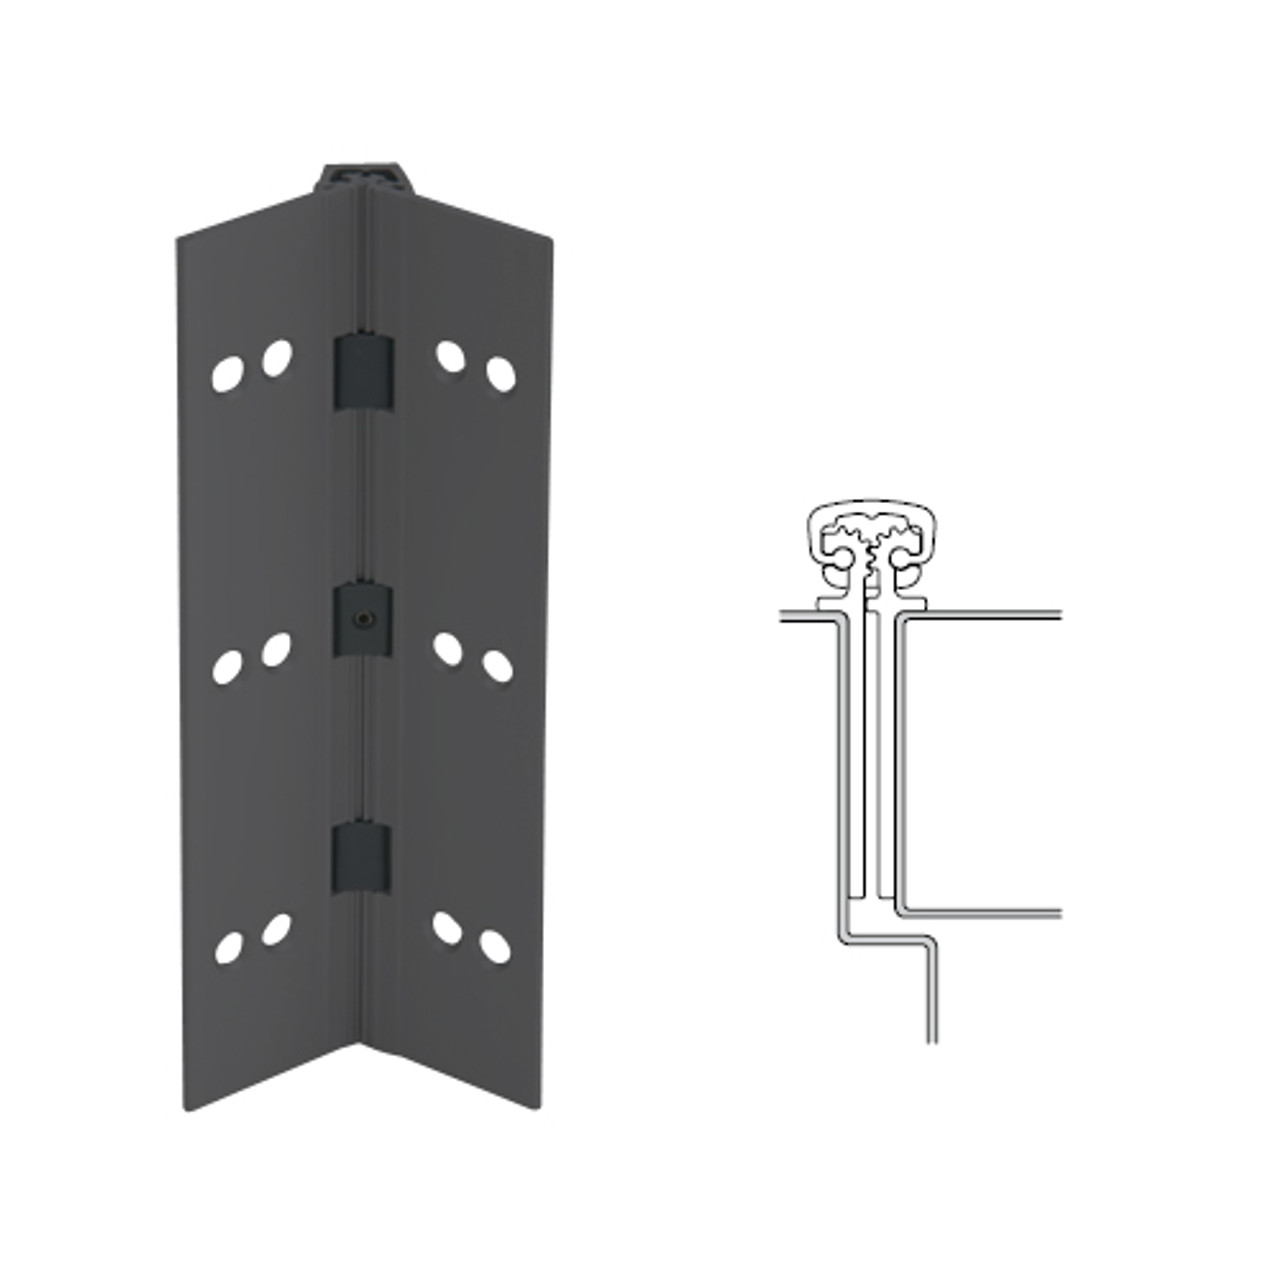 027XY-315AN-85 IVES Full Mortise Continuous Geared Hinges in Anodized Black